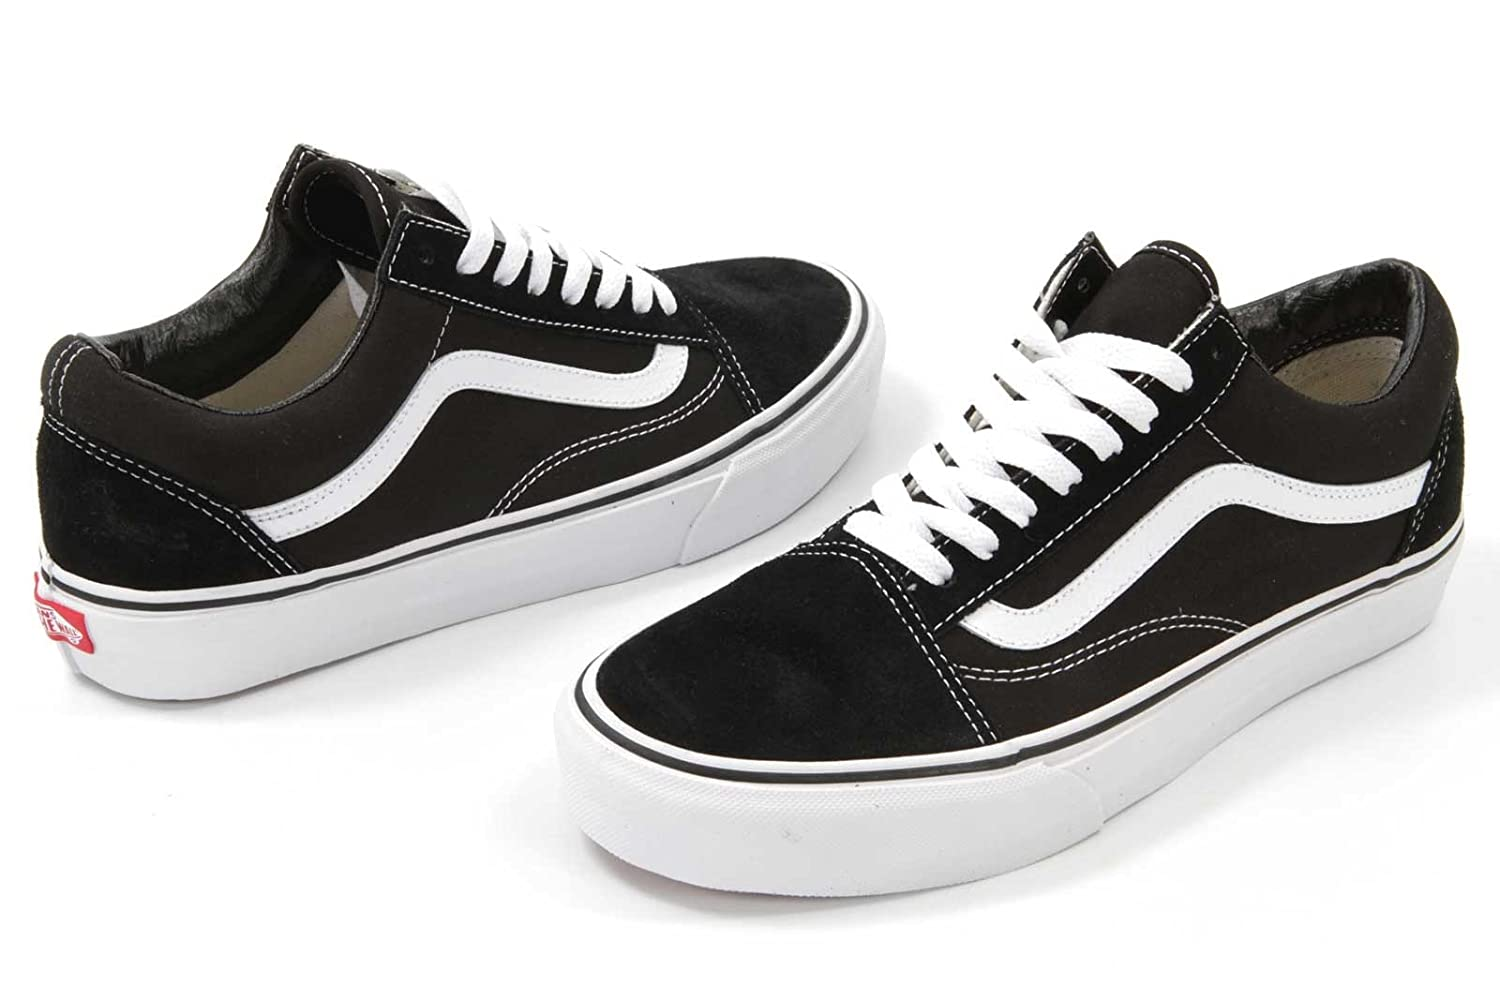 [バンズ] VANS OLD SKOOL B075FNL48Z 6.5 B(M) US Women / 5 D(M) US Men|(Black / White) (Black / White) 6.5 B(M) US Women / 5 D(M) US Men